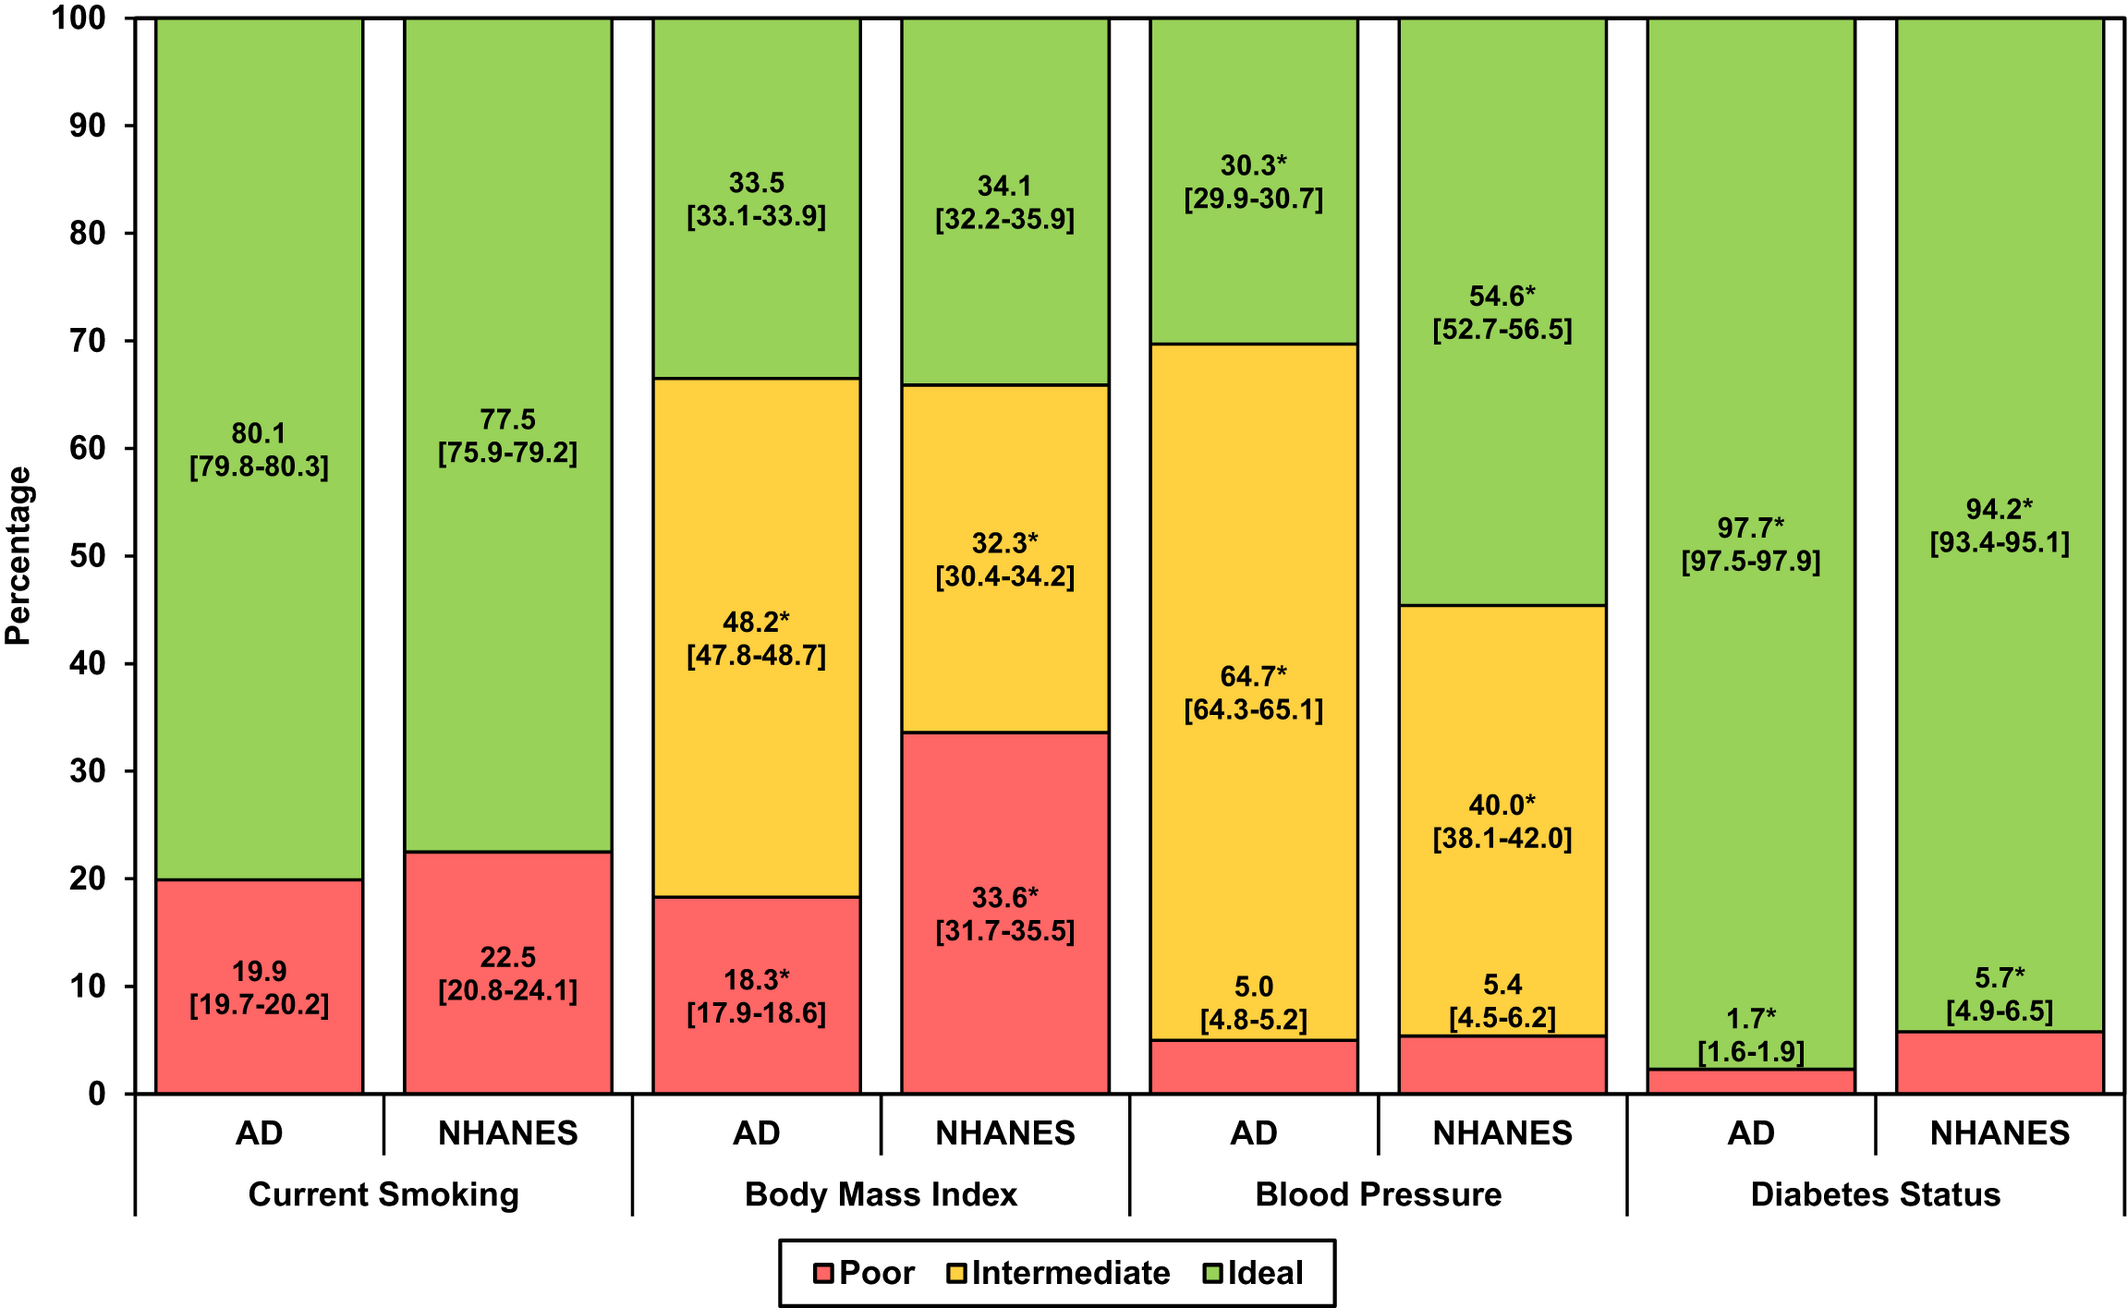 Comparison of Cardiovascular Health Between US Army and